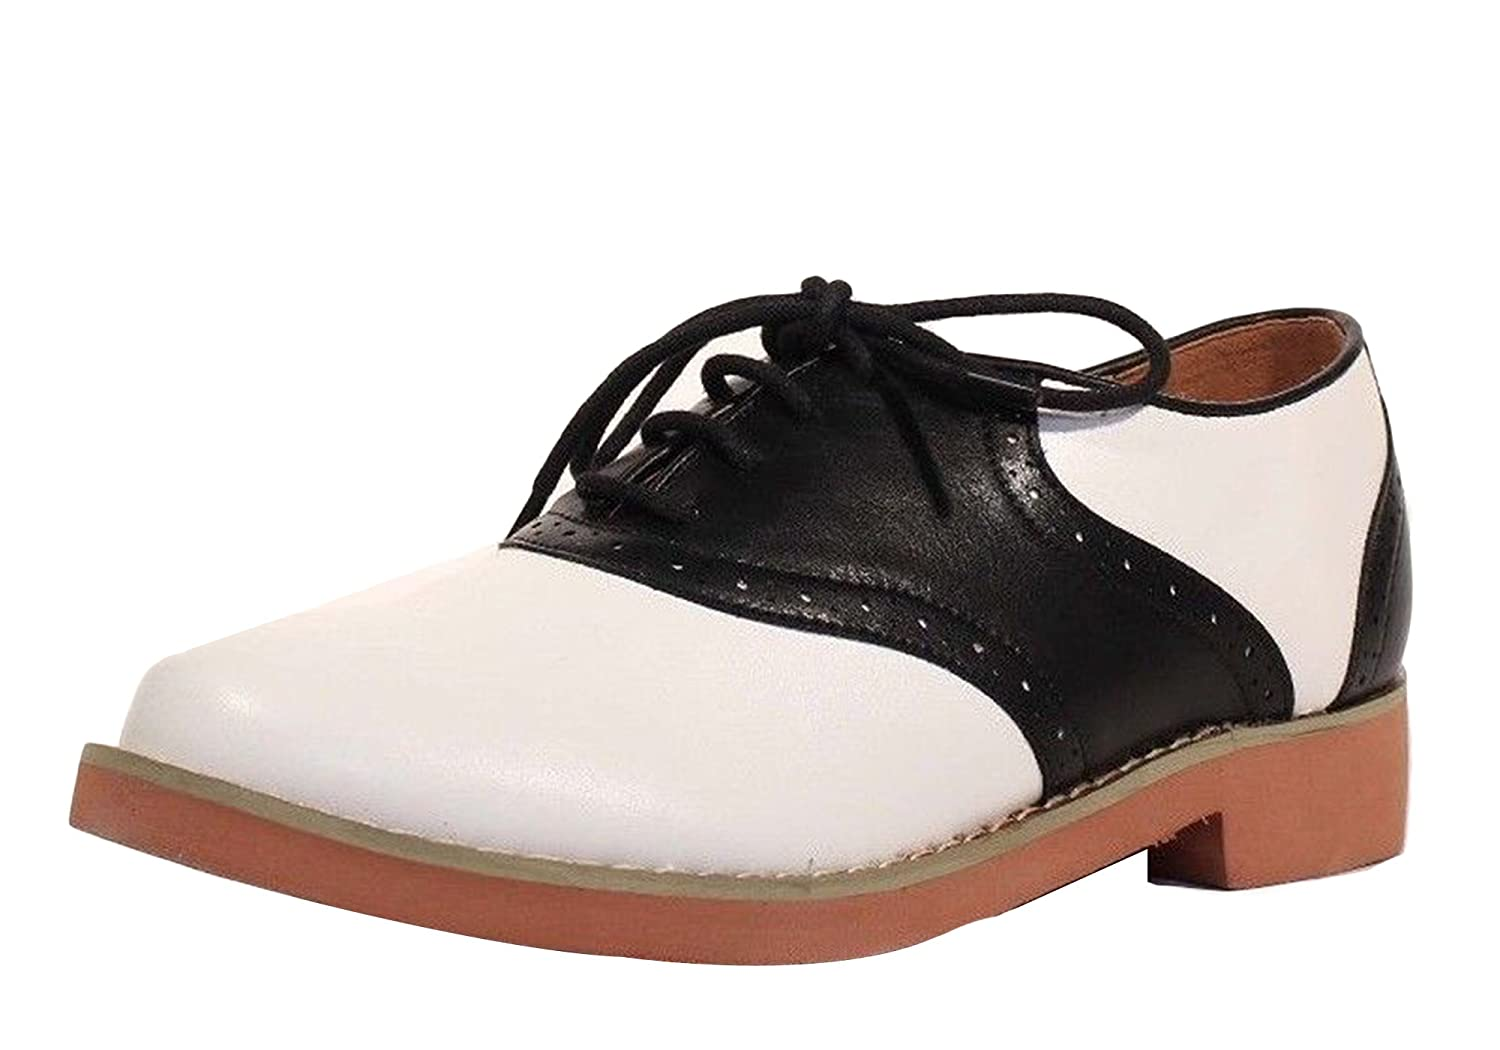 1930s Style Shoes – Art Deco Shoes Chelsea Crew Retro SALLY Two Tone Saddle Oxford Flats $44.93 AT vintagedancer.com